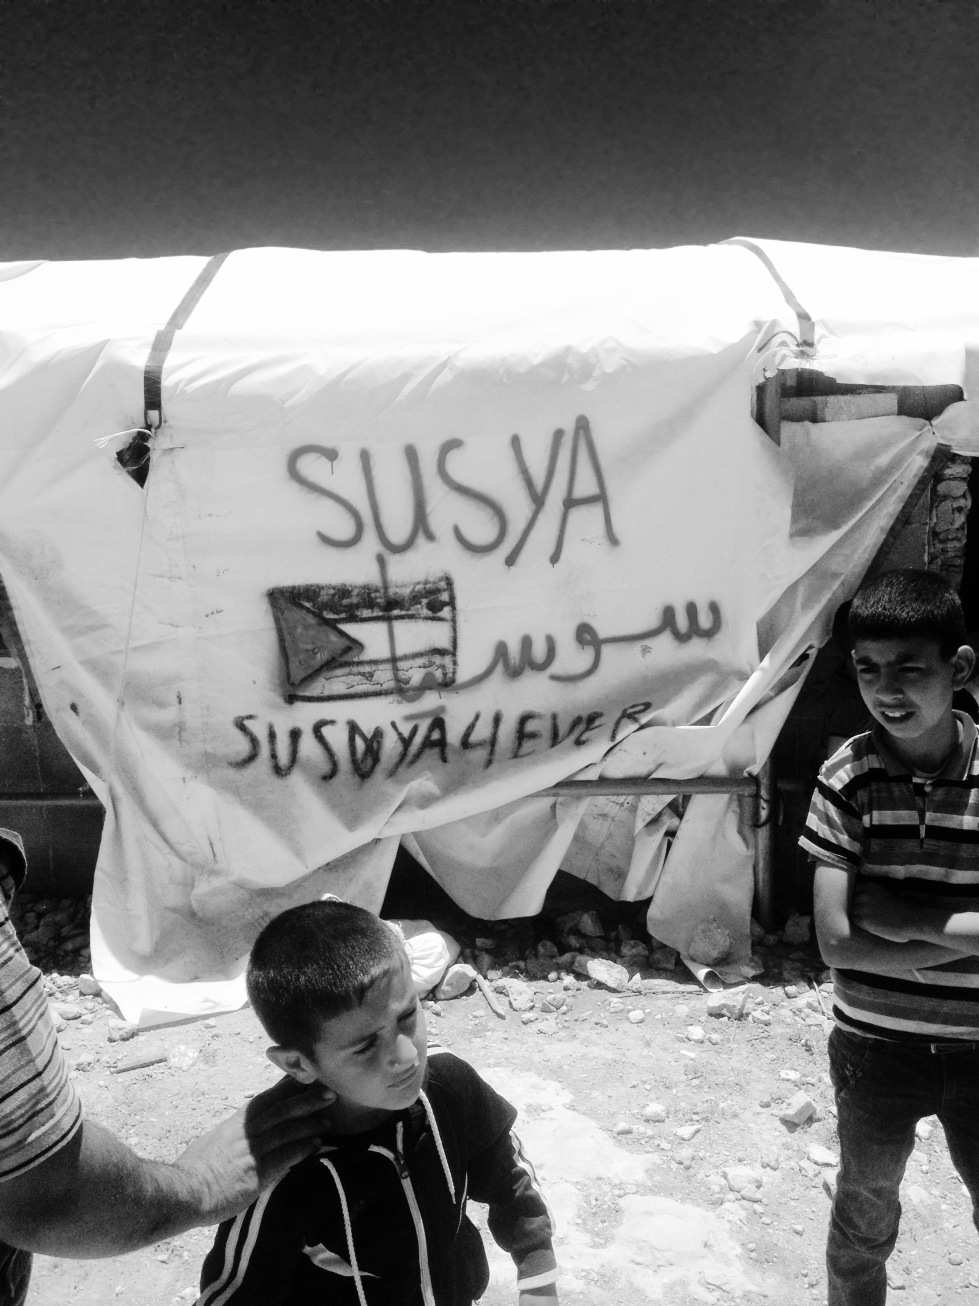 This struggle is not new to Susiya. That does not make it any less heartbreaking.